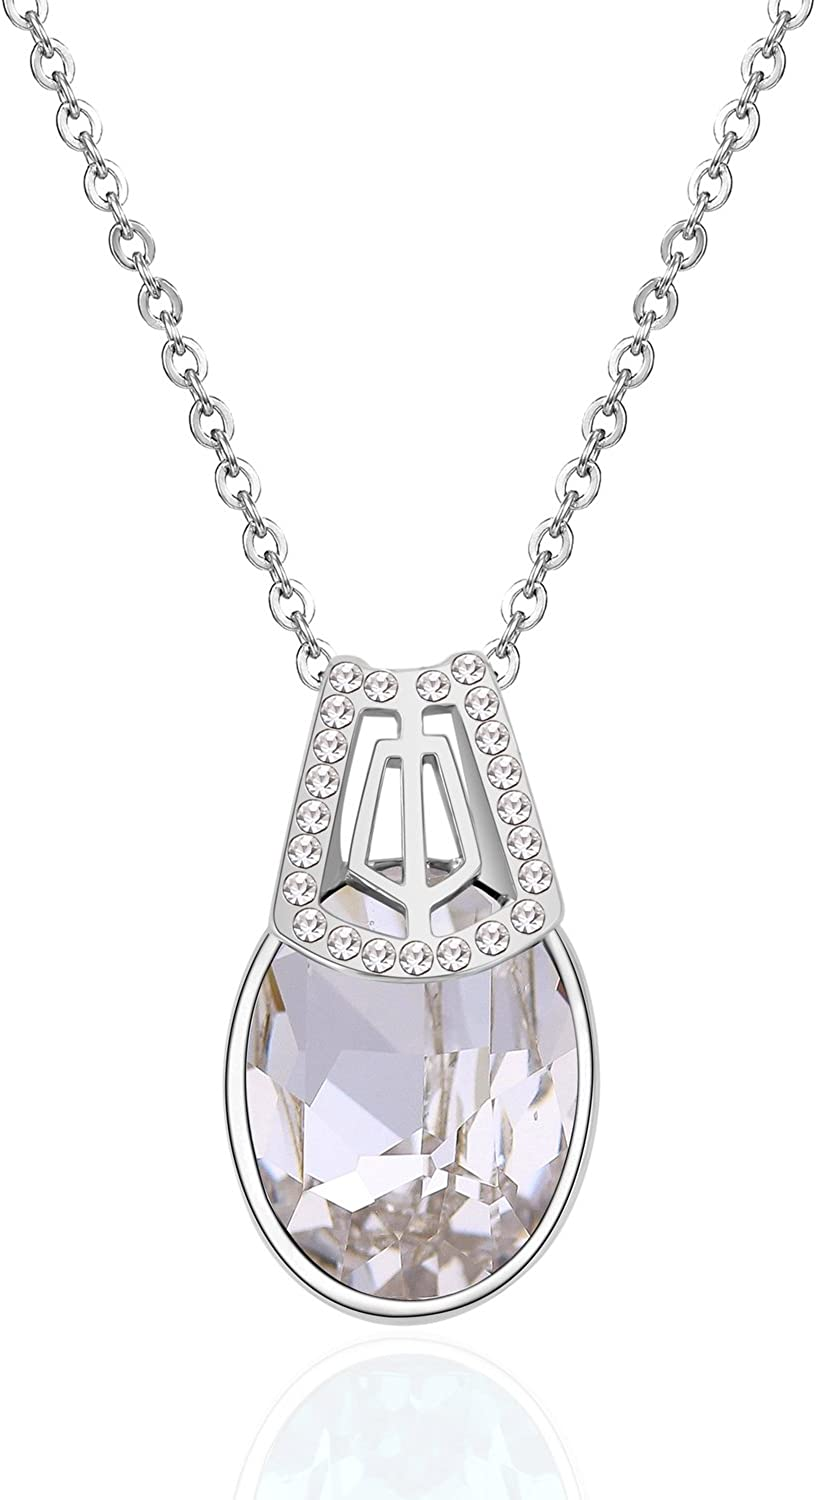 Collocation-Online High-end Accessories Austrian Crystal Necklace Acacia Language Short Paragraph Pendant Jewelry